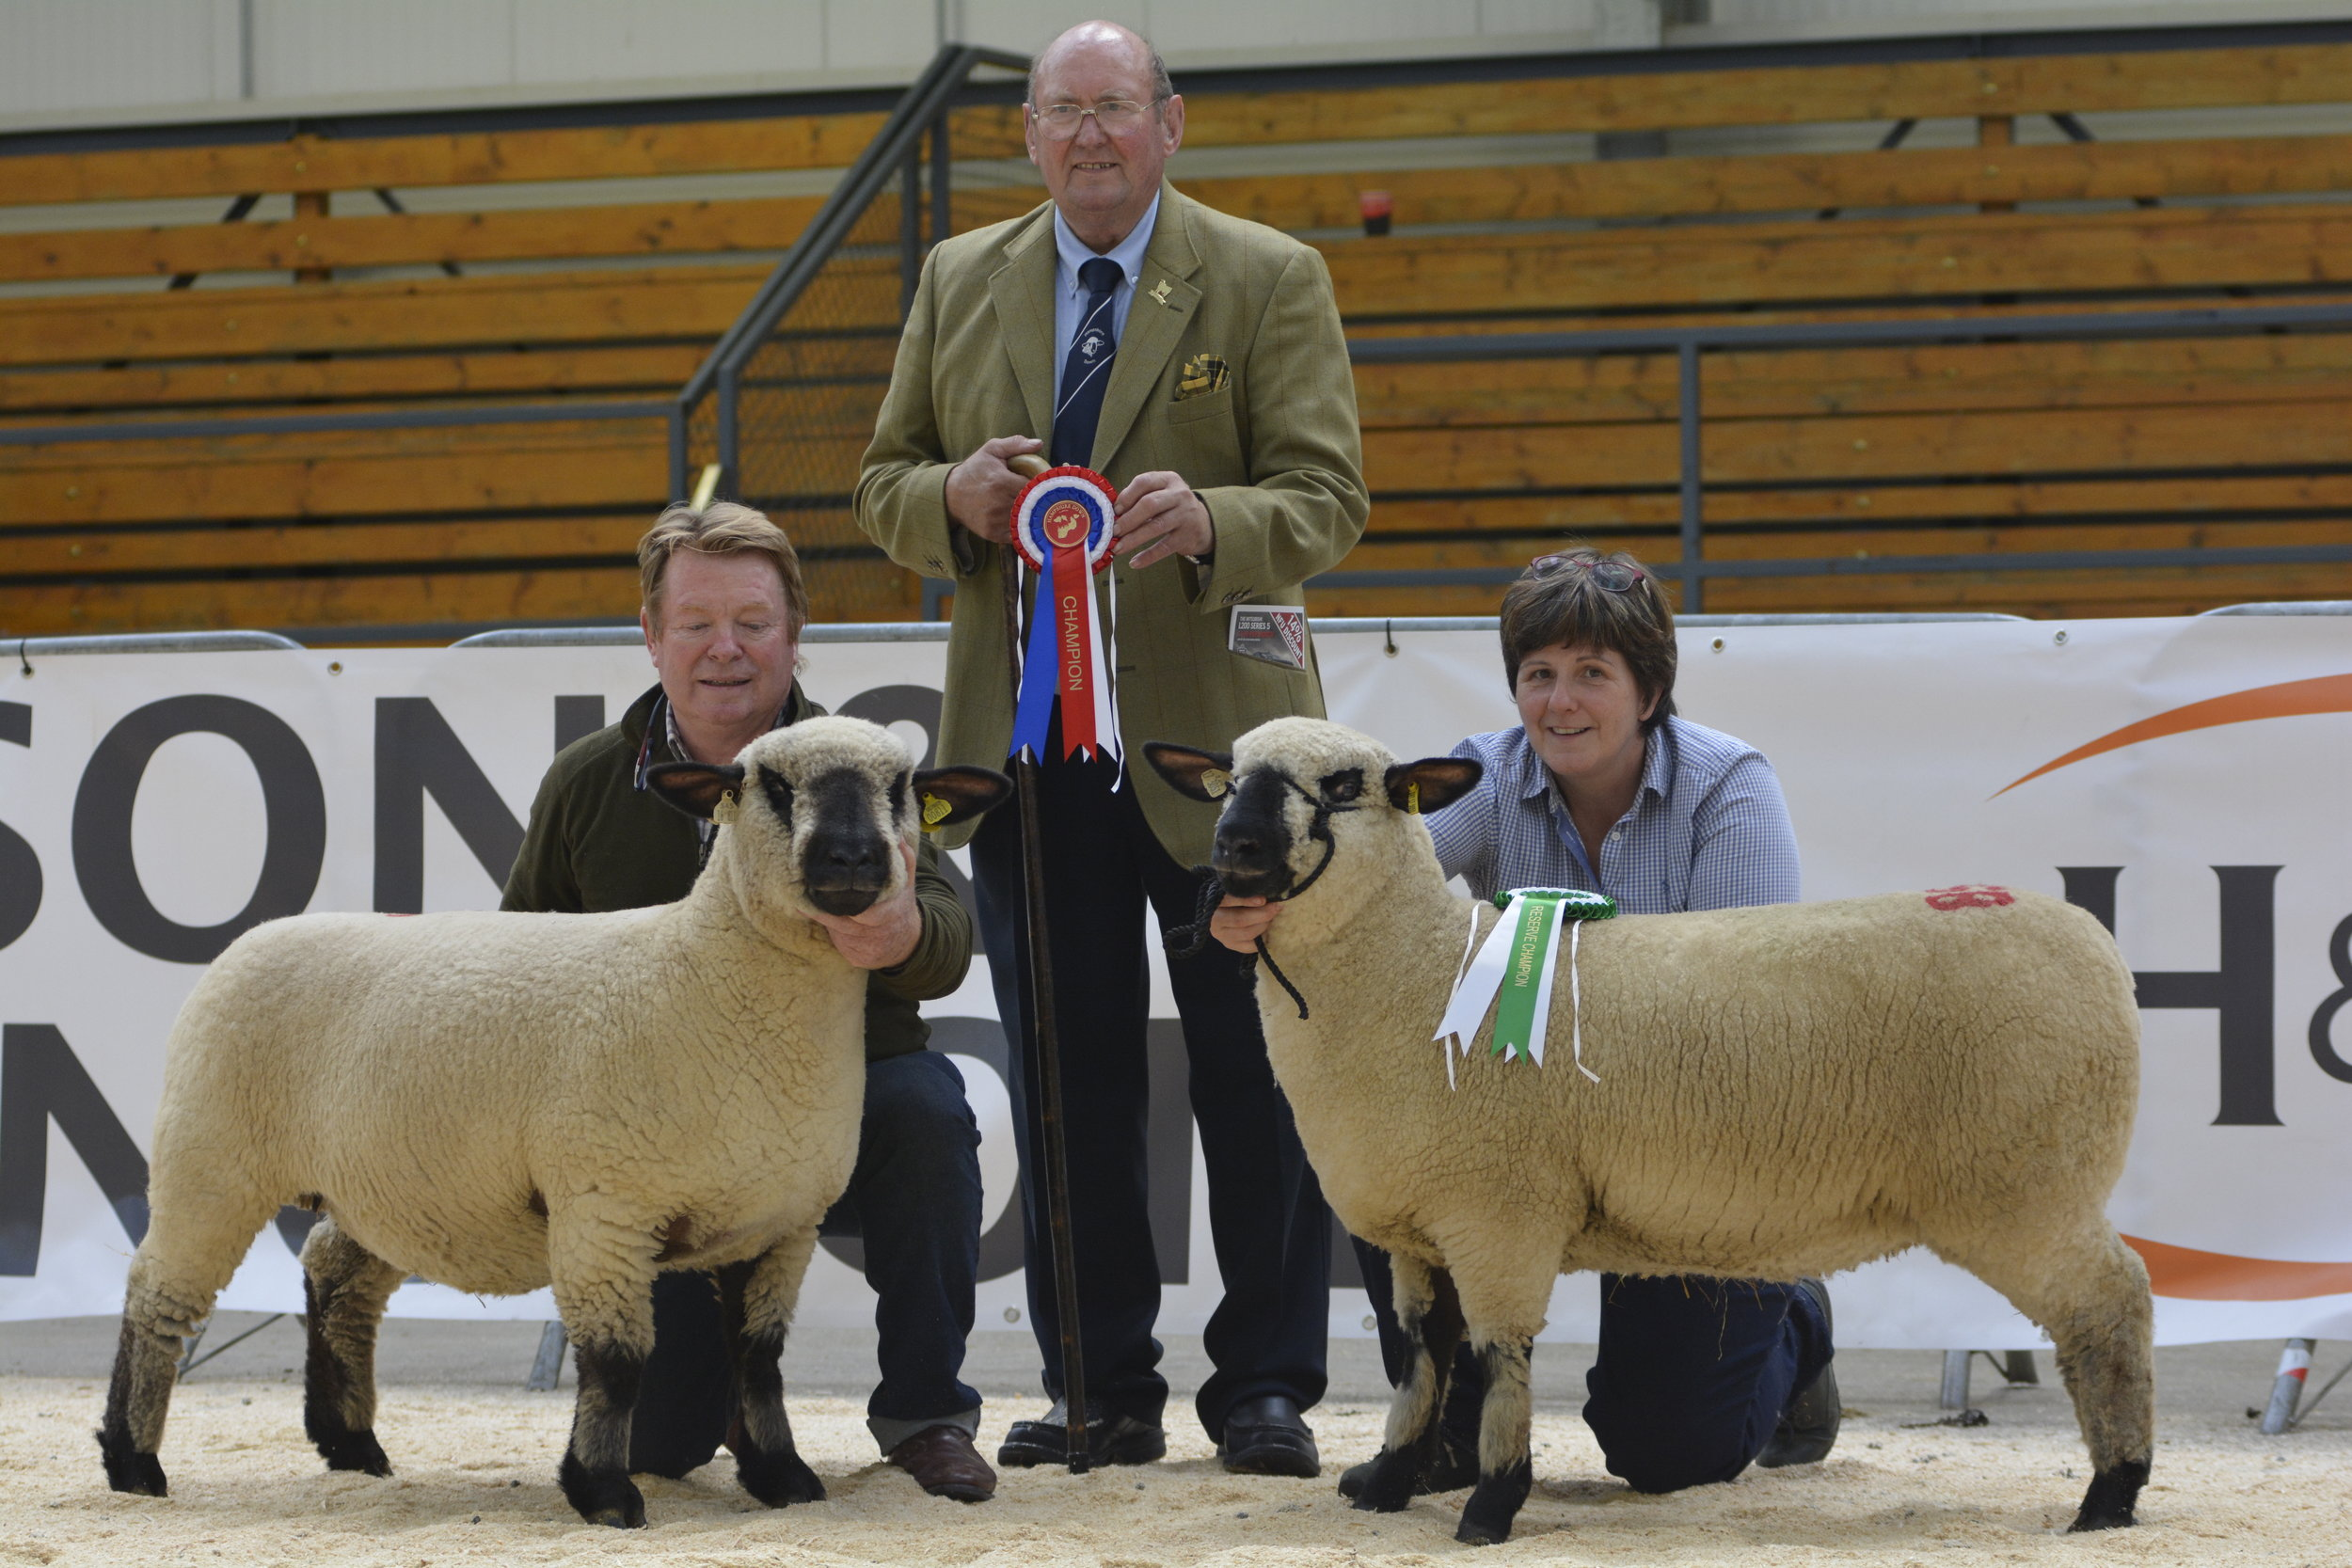 Show Champion/leading price, Shearling Ewe from BALLYCREELLY. Reserve Show Champion from GRAYLEN, a high index ewe lamb by Kelsey Icon which sold for 700 gns. Pictured with show judge Jim Cresswell